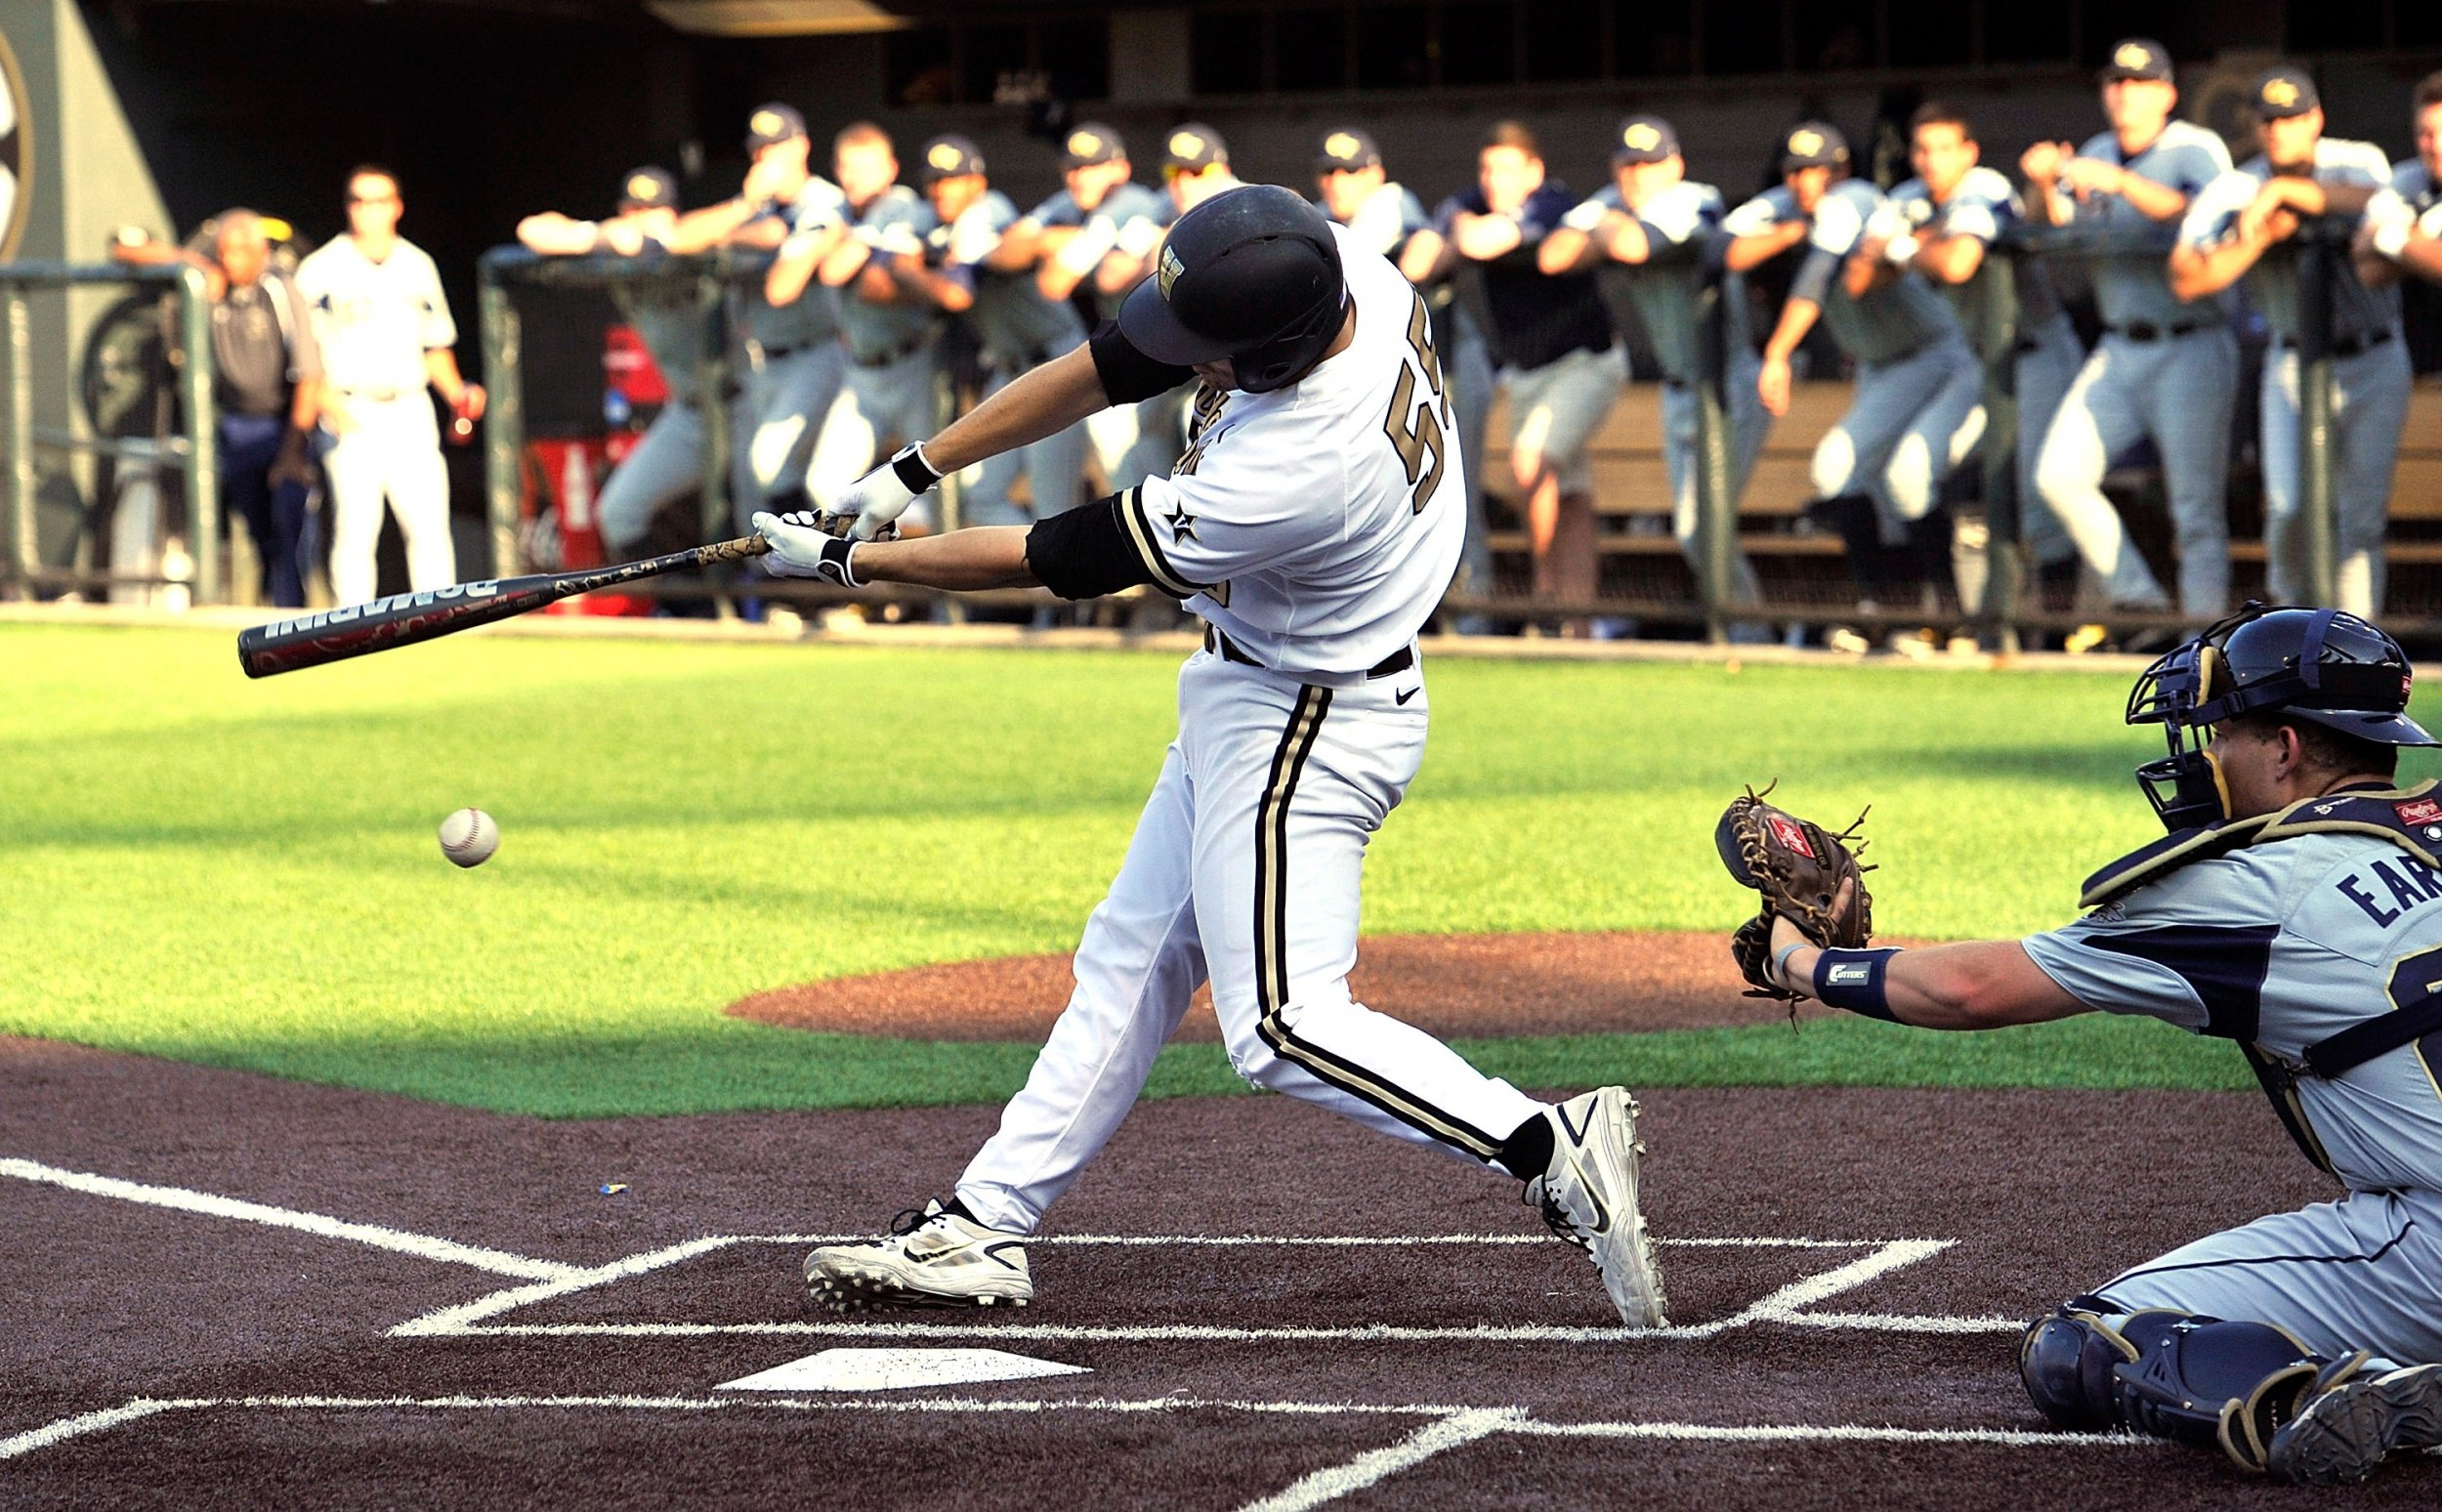 2019 ncaa baseball regionals tournament how to watch live stream time